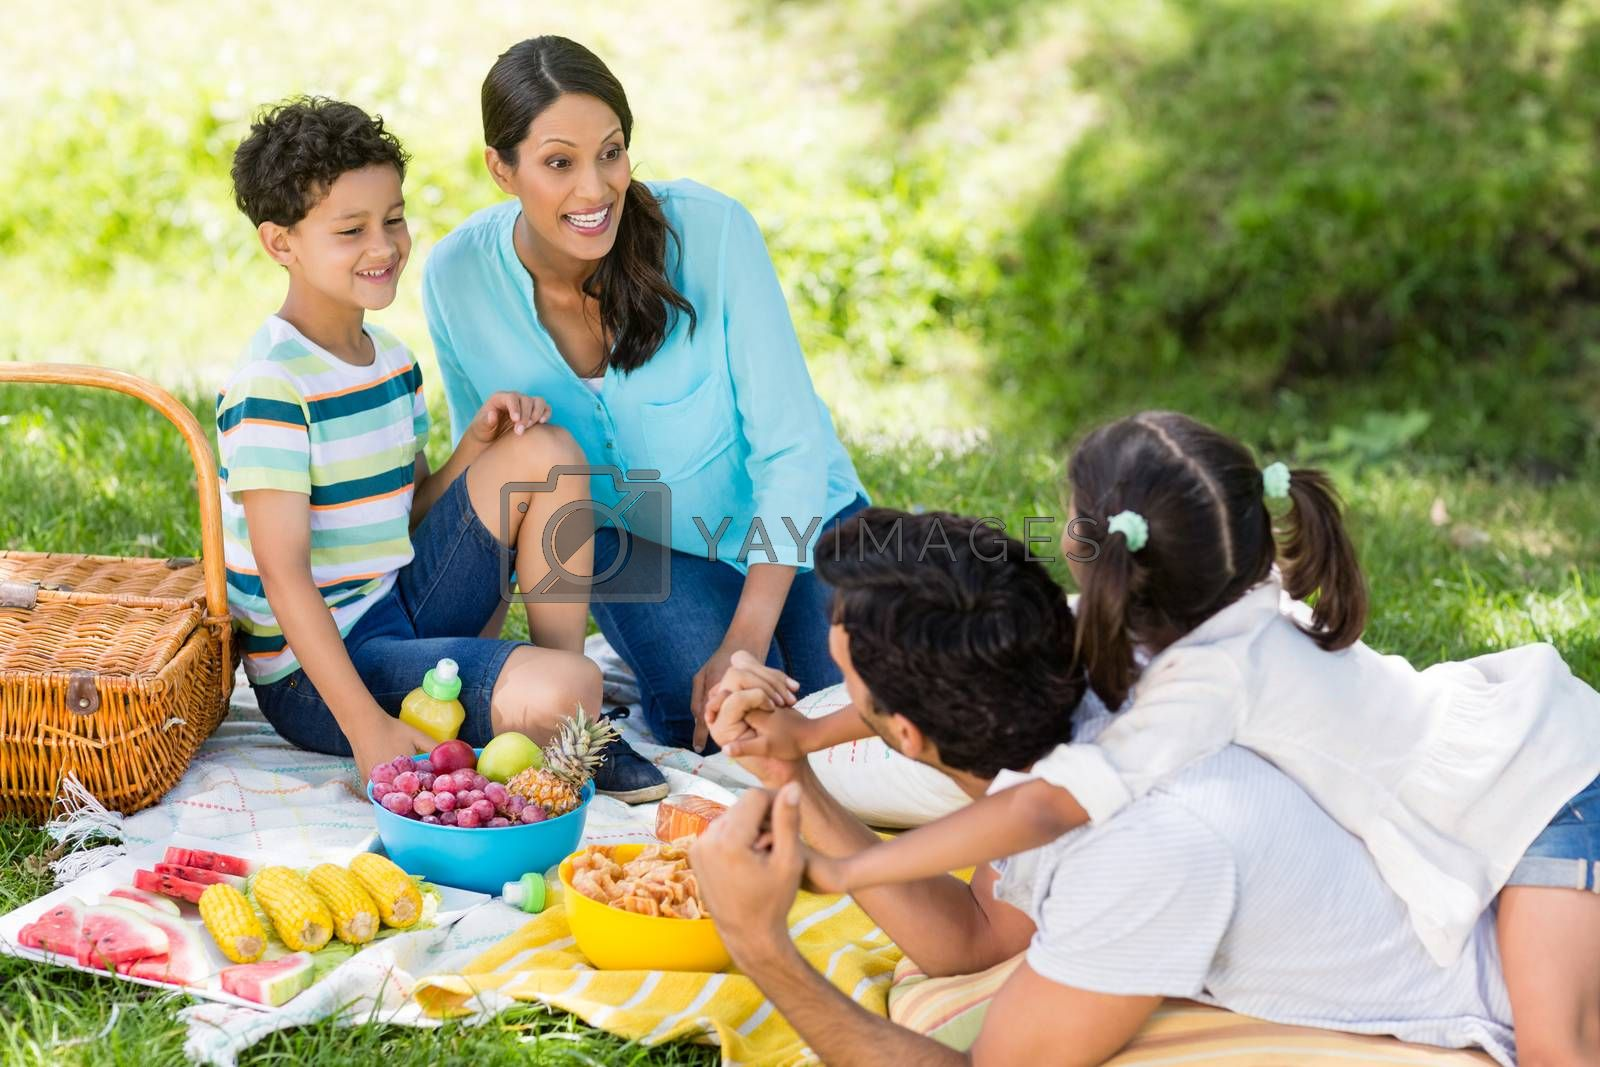 Happy family enjoying together in a park on sunny day